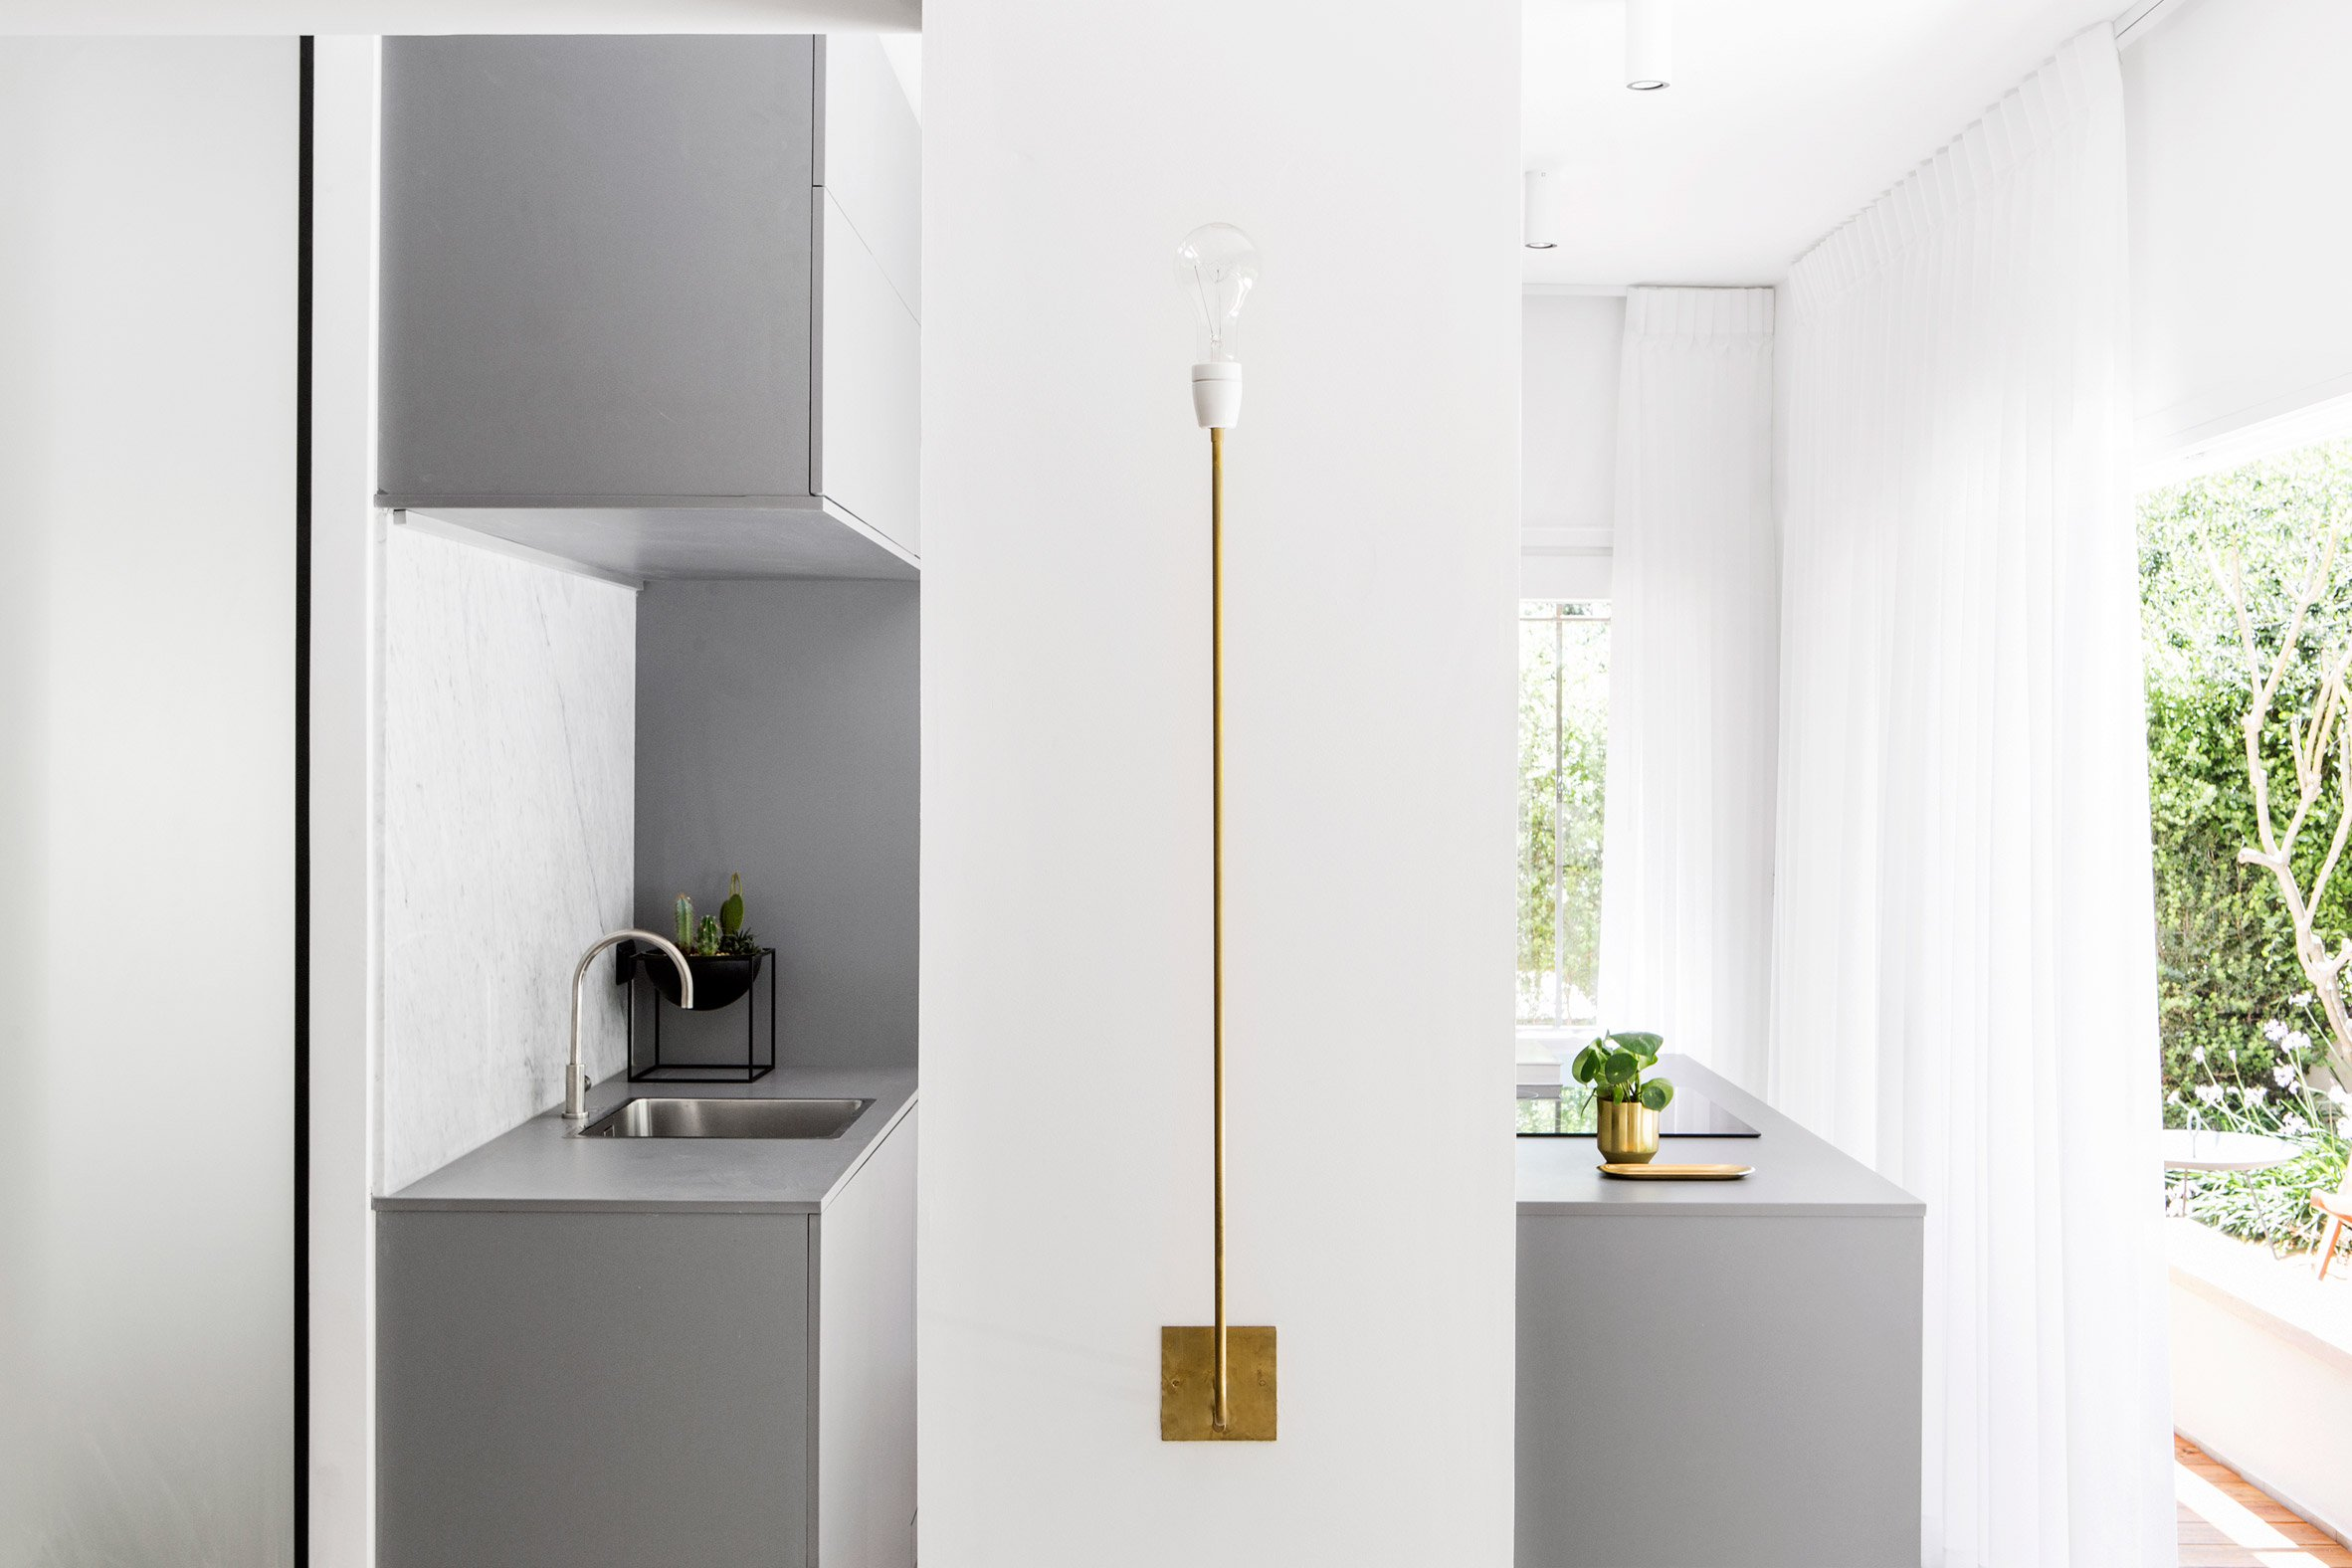 The views are provided in every spot of this apartment, and this helps to fill it with light and air